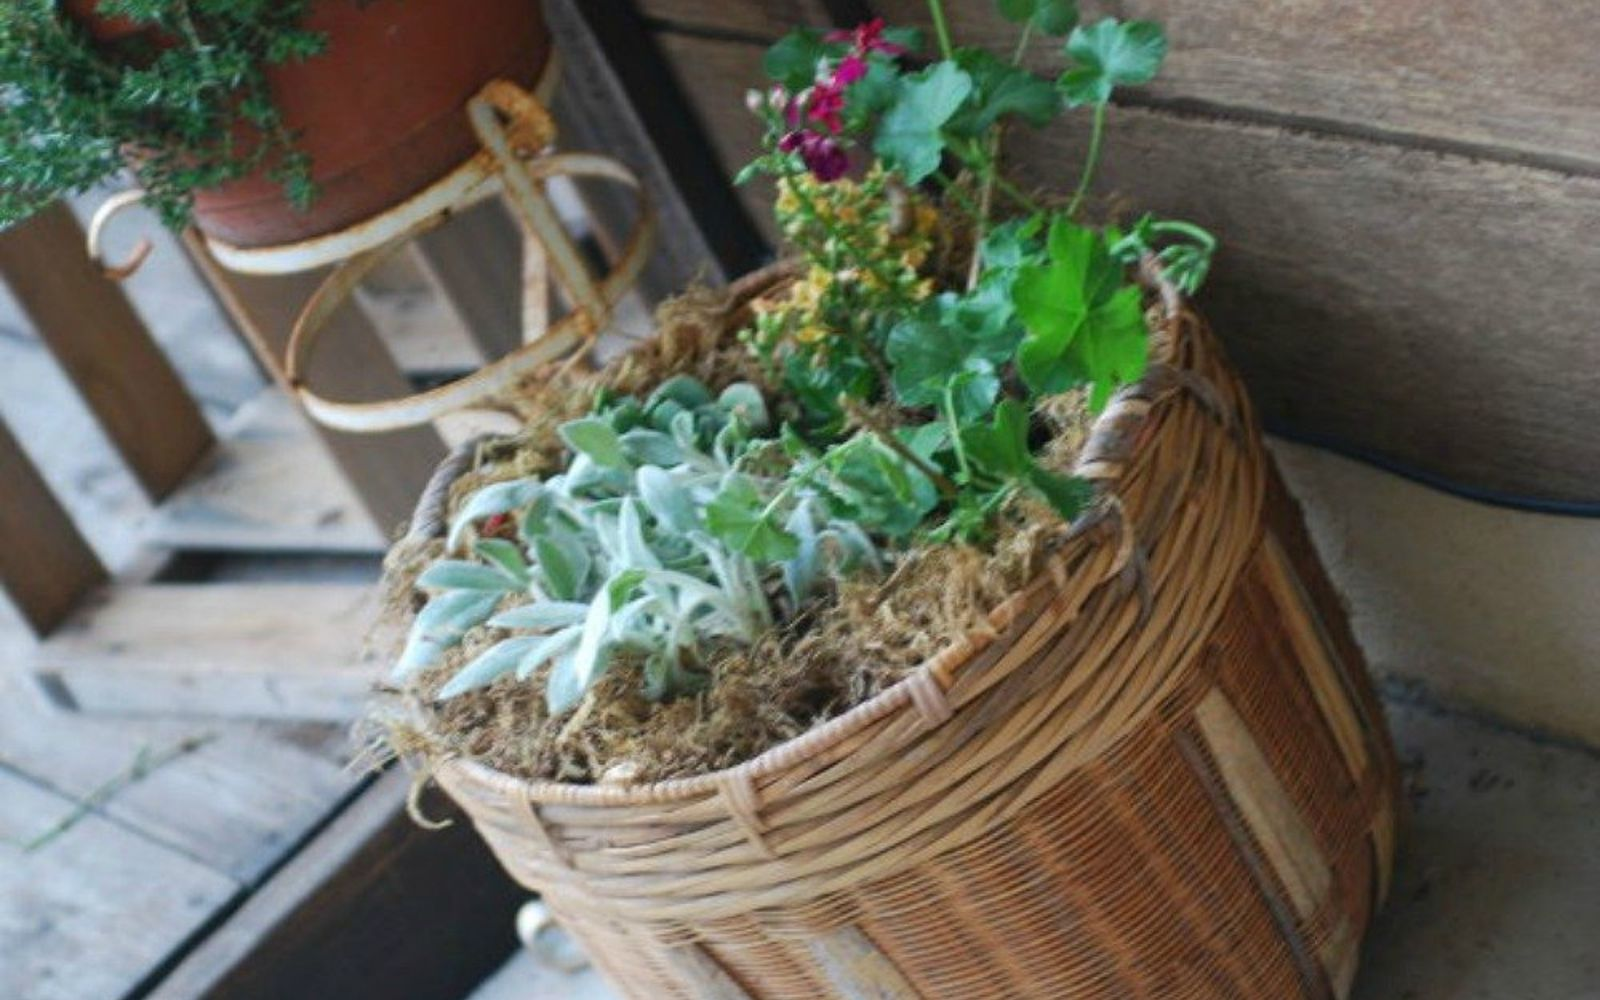 s make wicker trendy again with these brilliant ideas, painted furniture, After An adorable porch planter